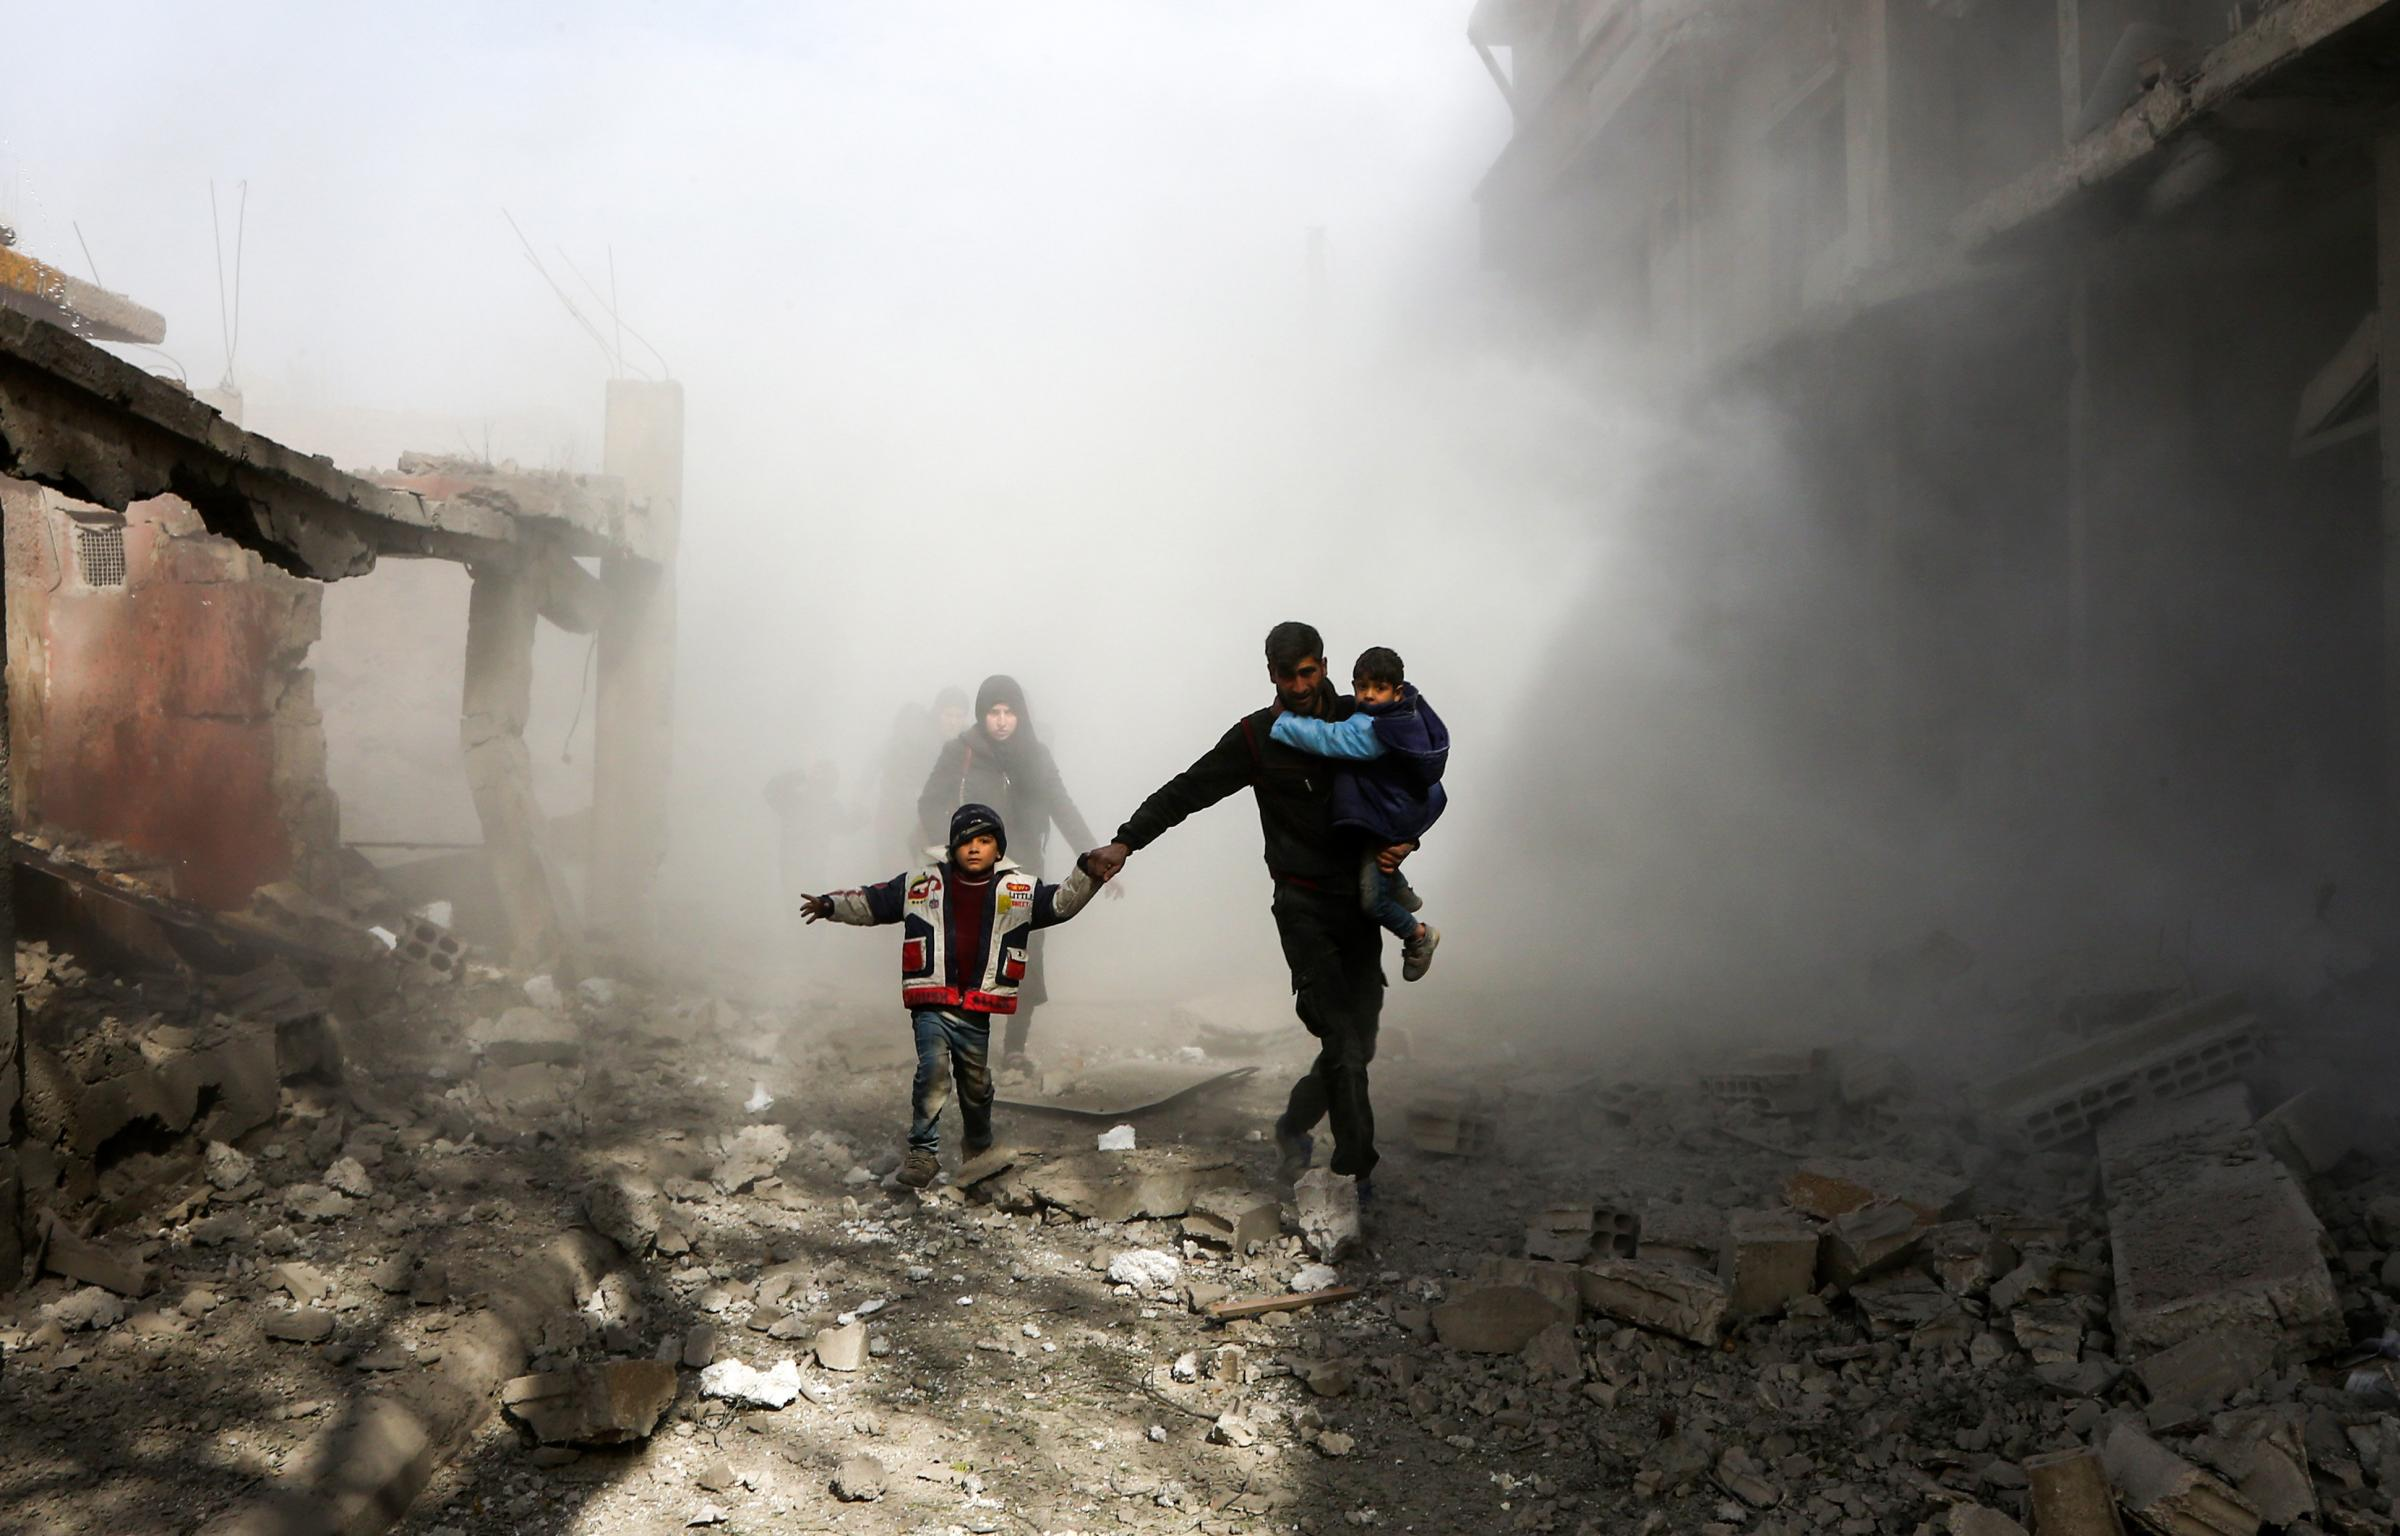 Syria is now synonymous with suffering